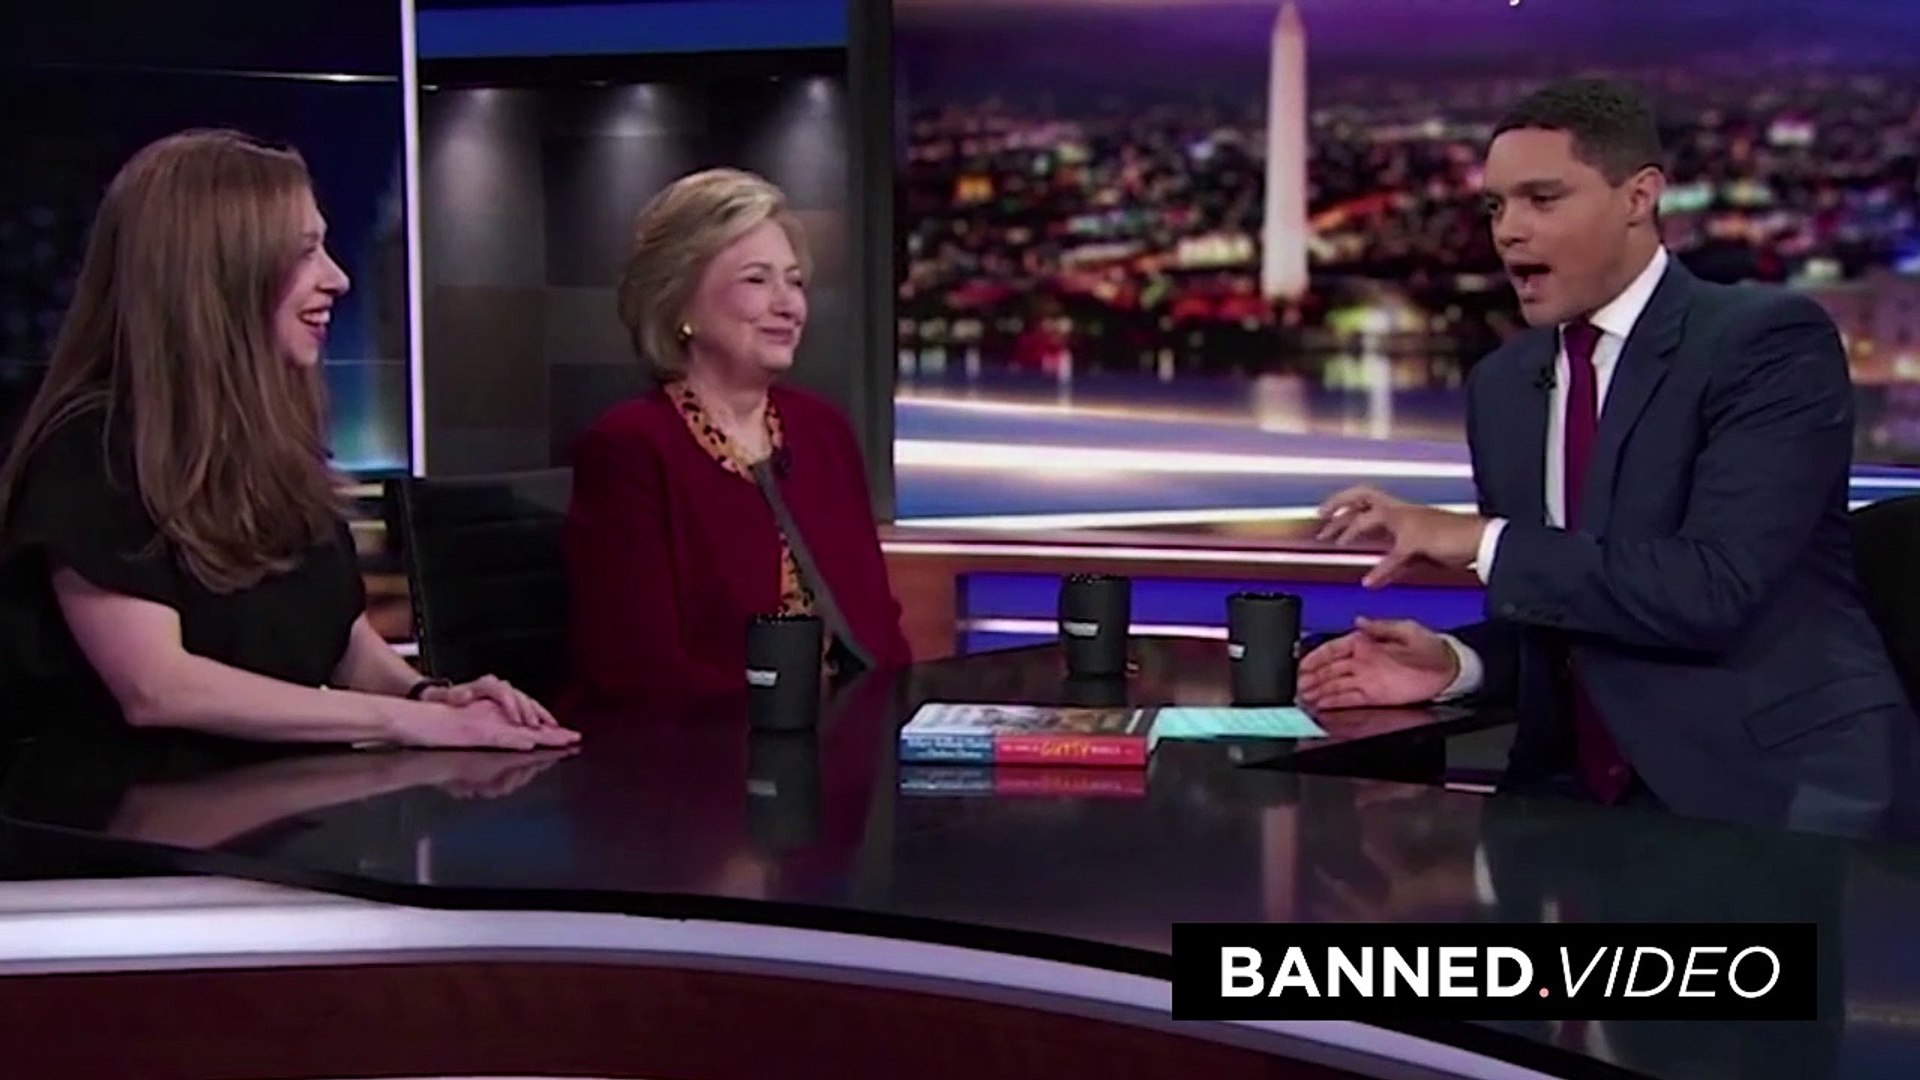 Trevor Noah asked Hillary how she killed pedophile Jeffrey Epstein, instead of answering she just la